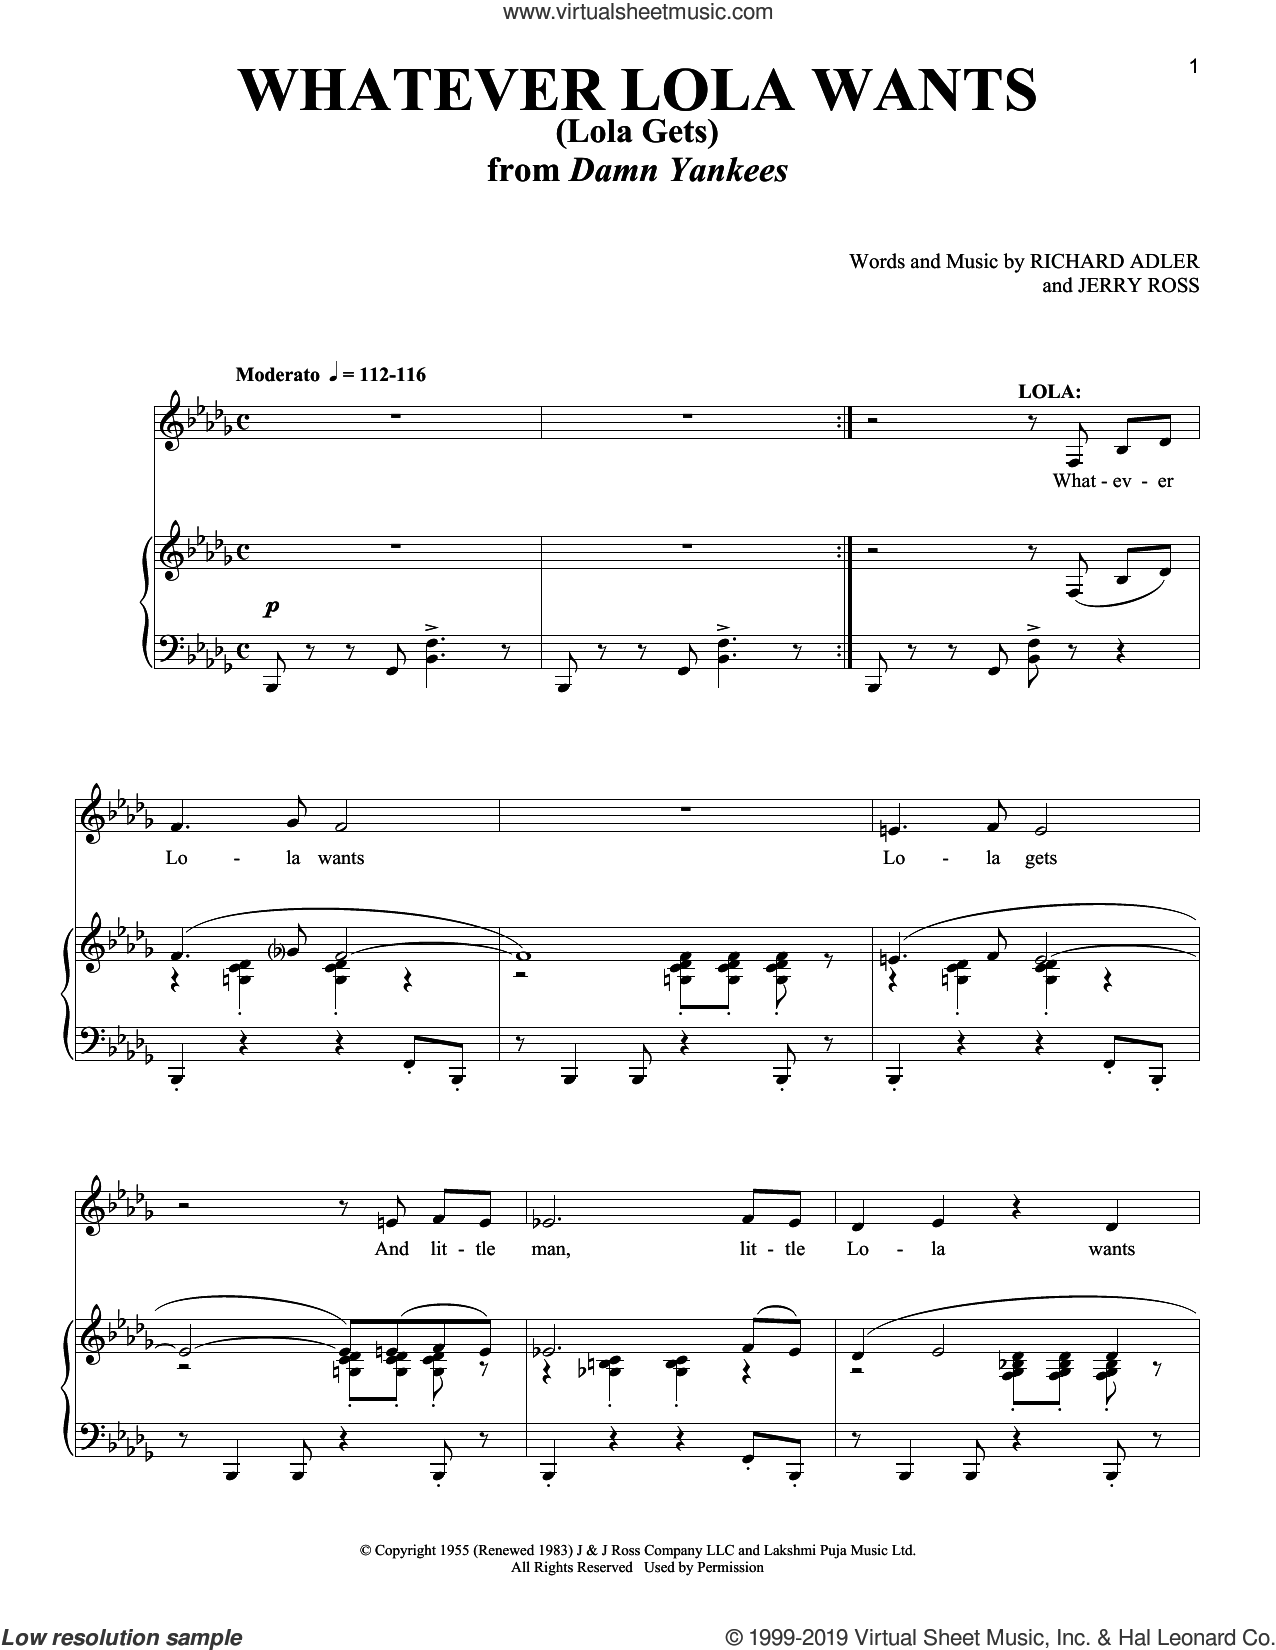 Whatever Lola Wants (Lola Gets) sheet music for voice and piano by Richard Adler and Jerry Ross, intermediate skill level